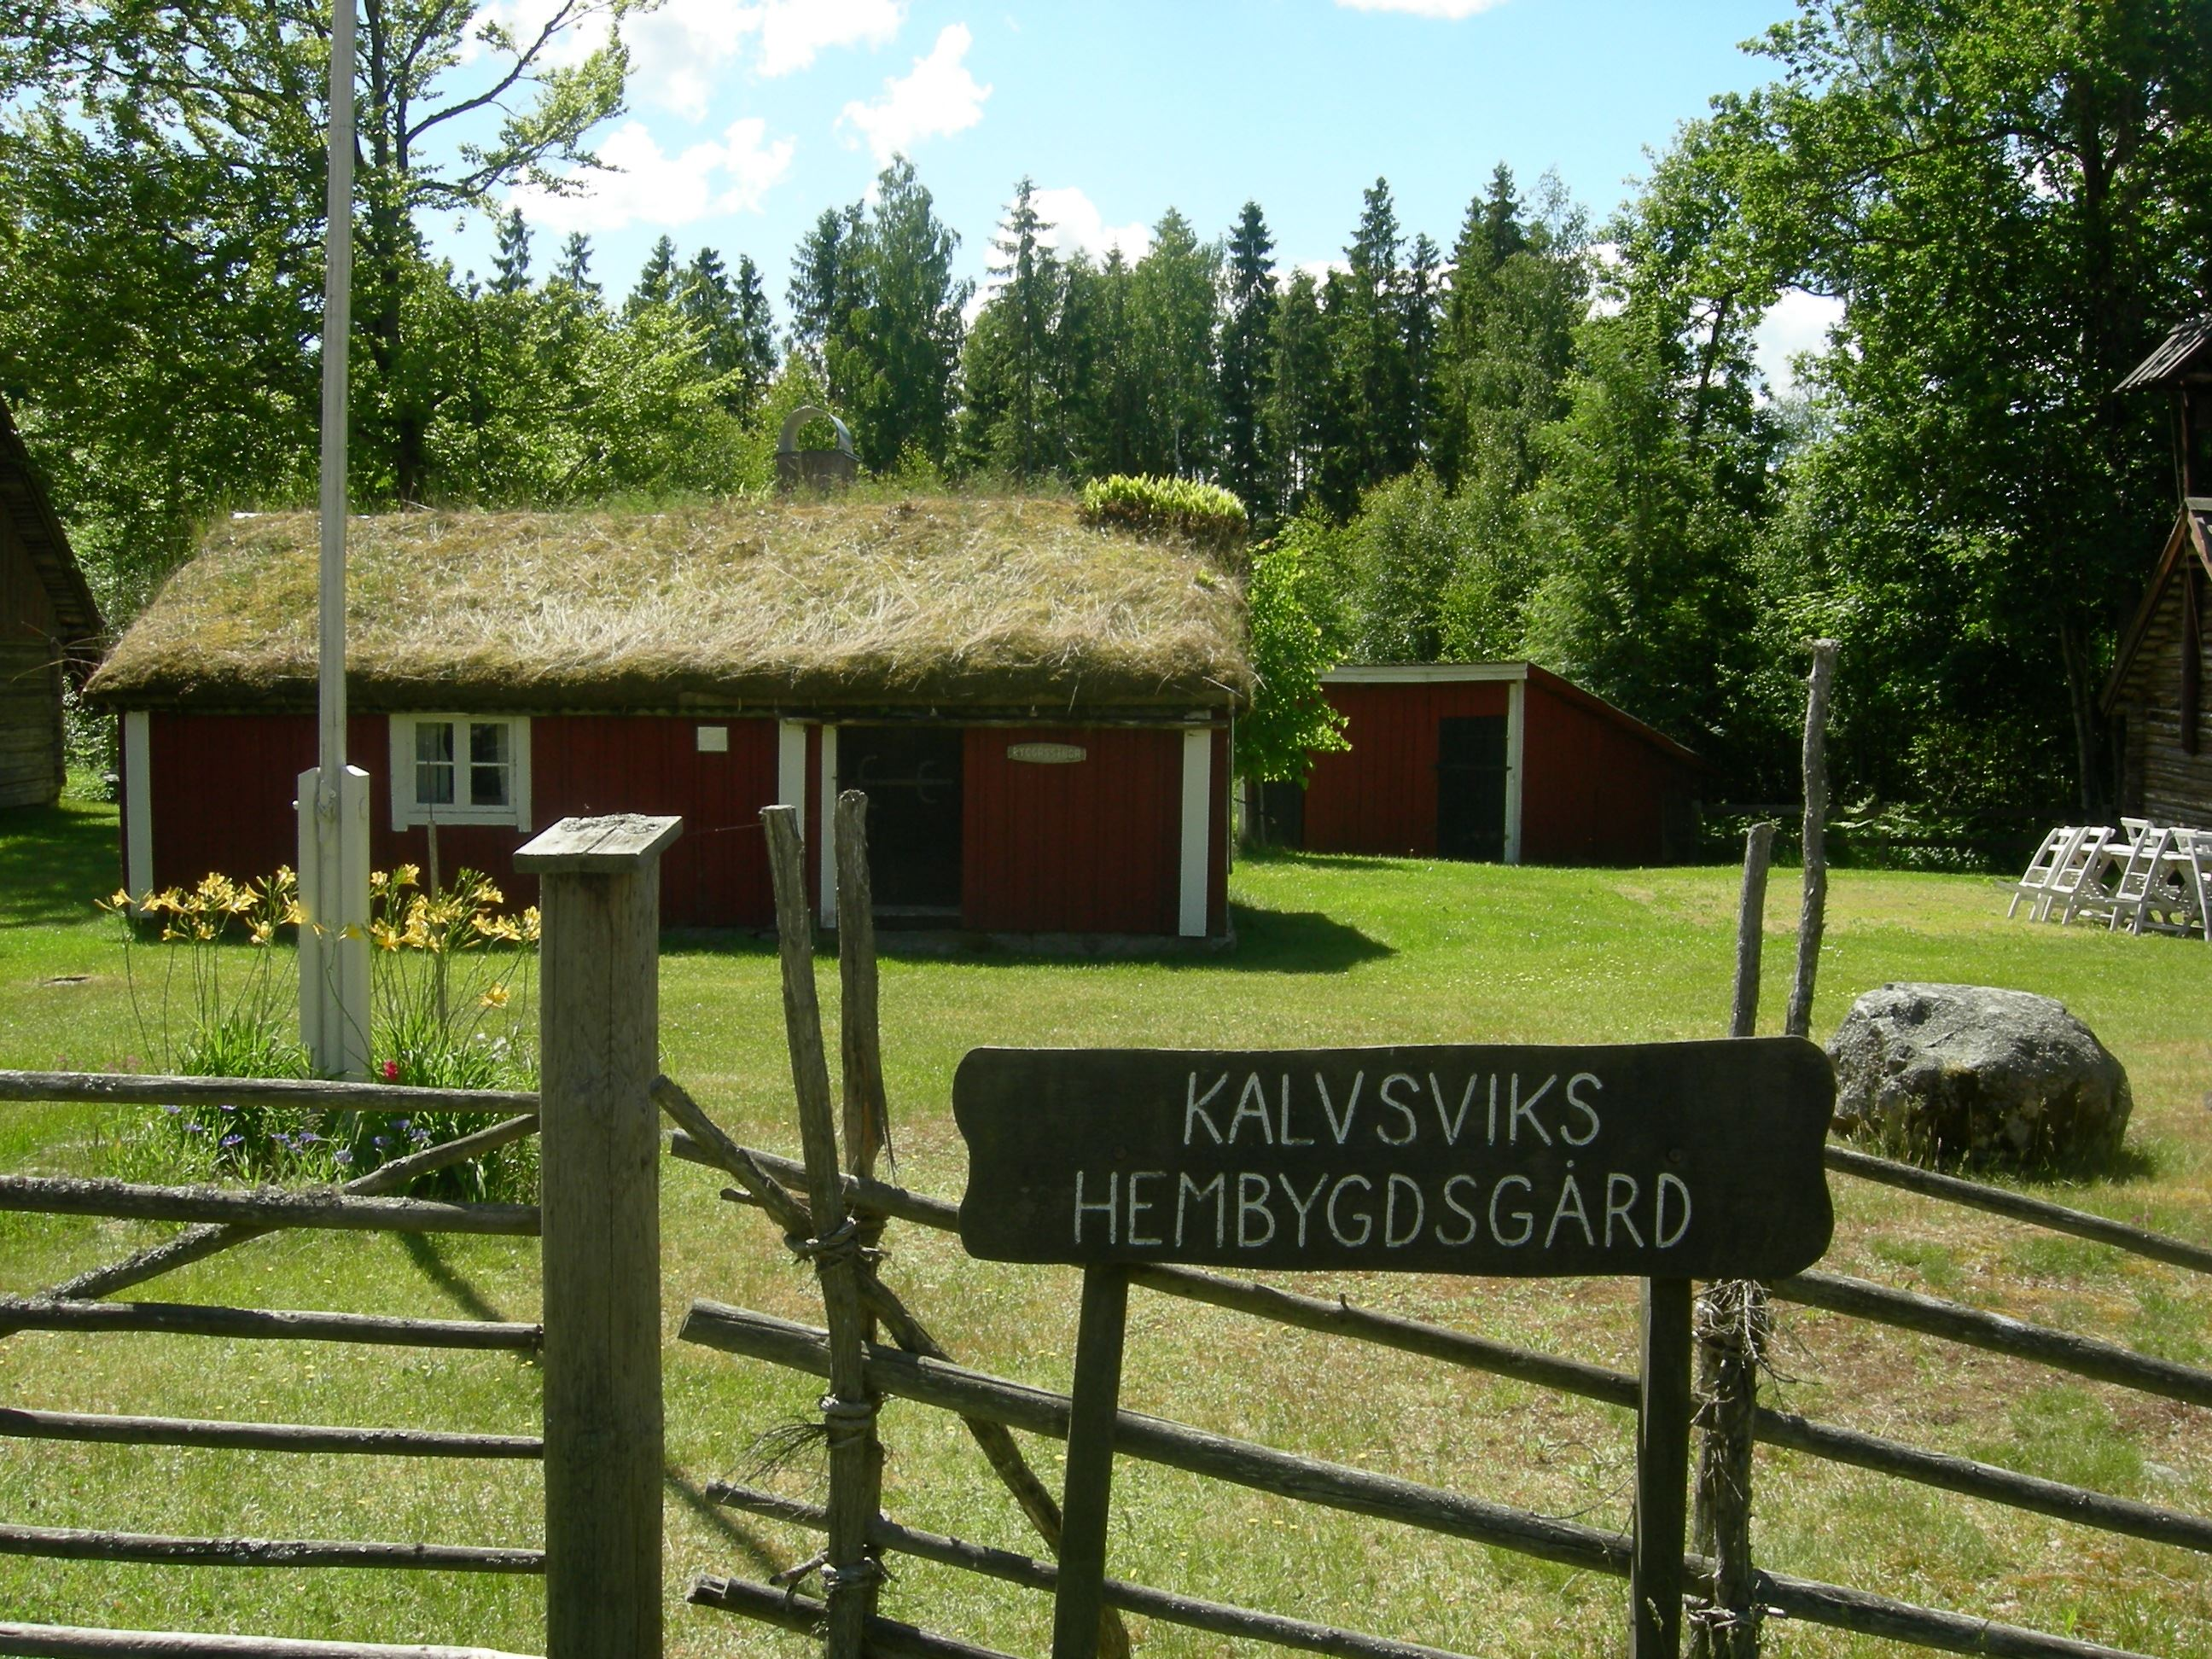 Kalvsvik's local history society